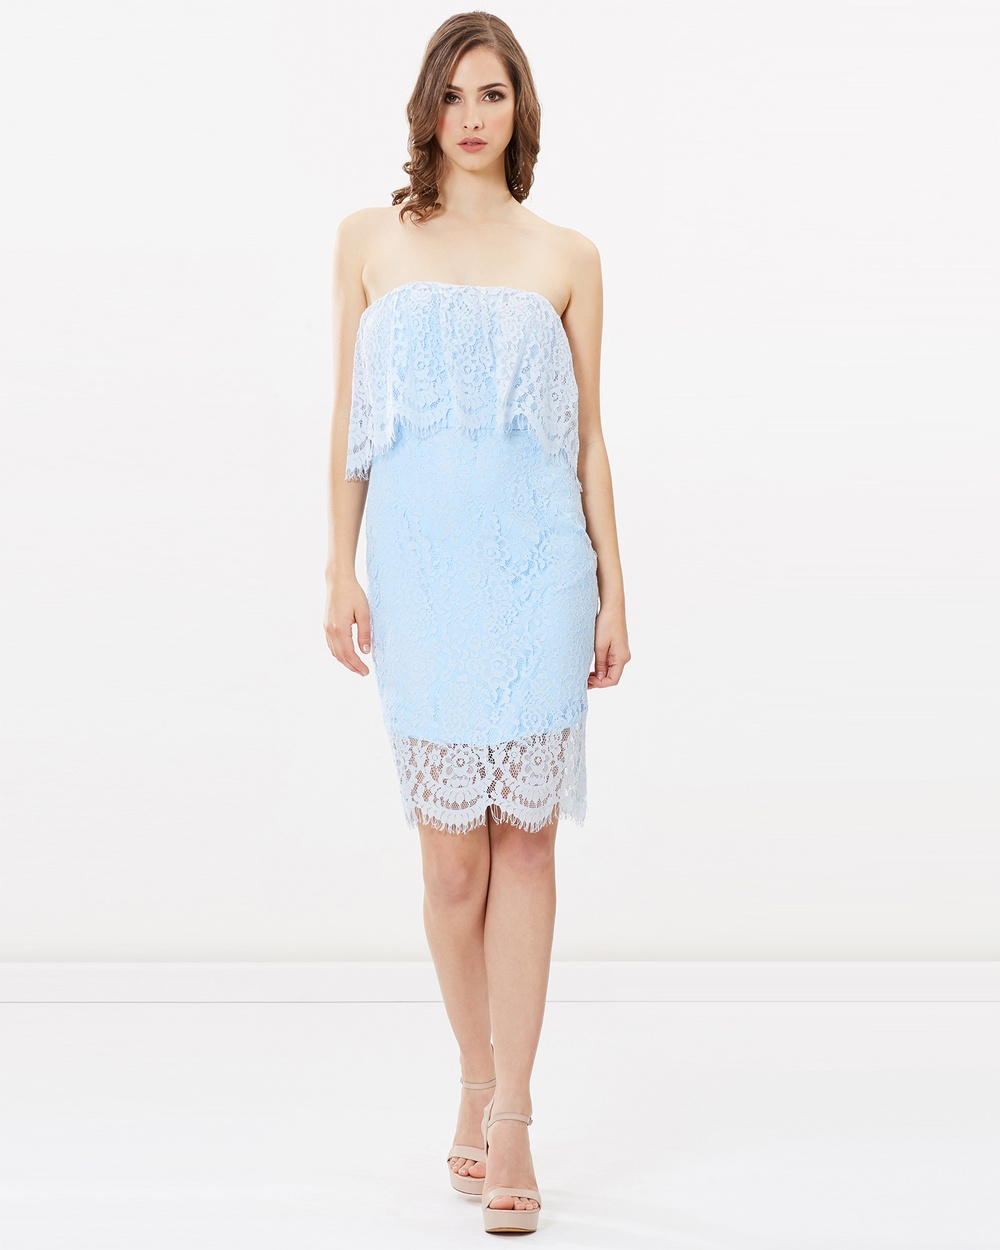 Romance by Honey and Beau Fay Dress Bridesmaid Dresses Soft Blue Fay Dress